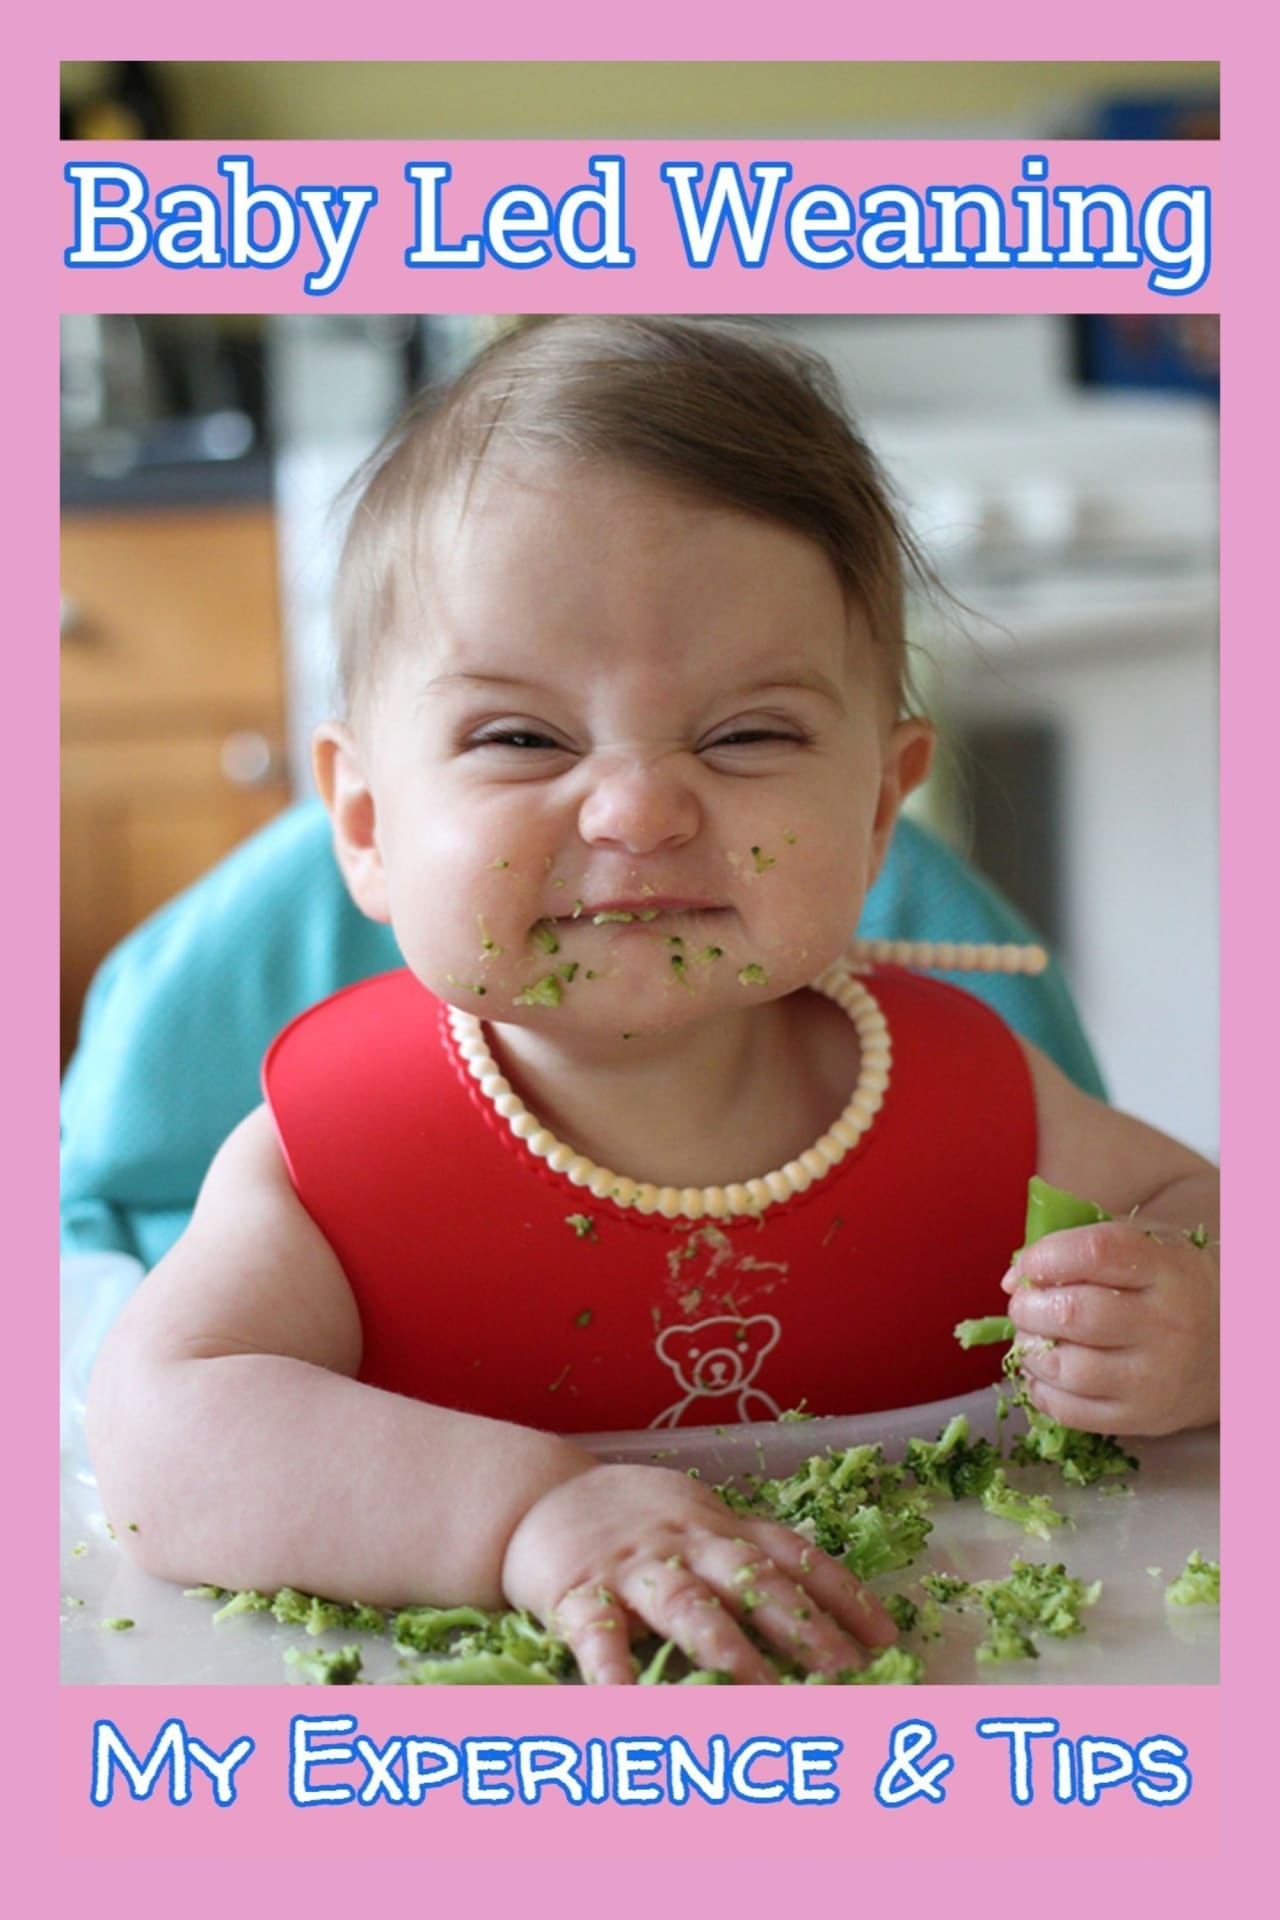 Baby Led Weaning - Introducing Solids To Baby with Baby Led Weaning – Baby led weaning first foods, recipes, rules, starting baby led weaning tips and advice and so much more!